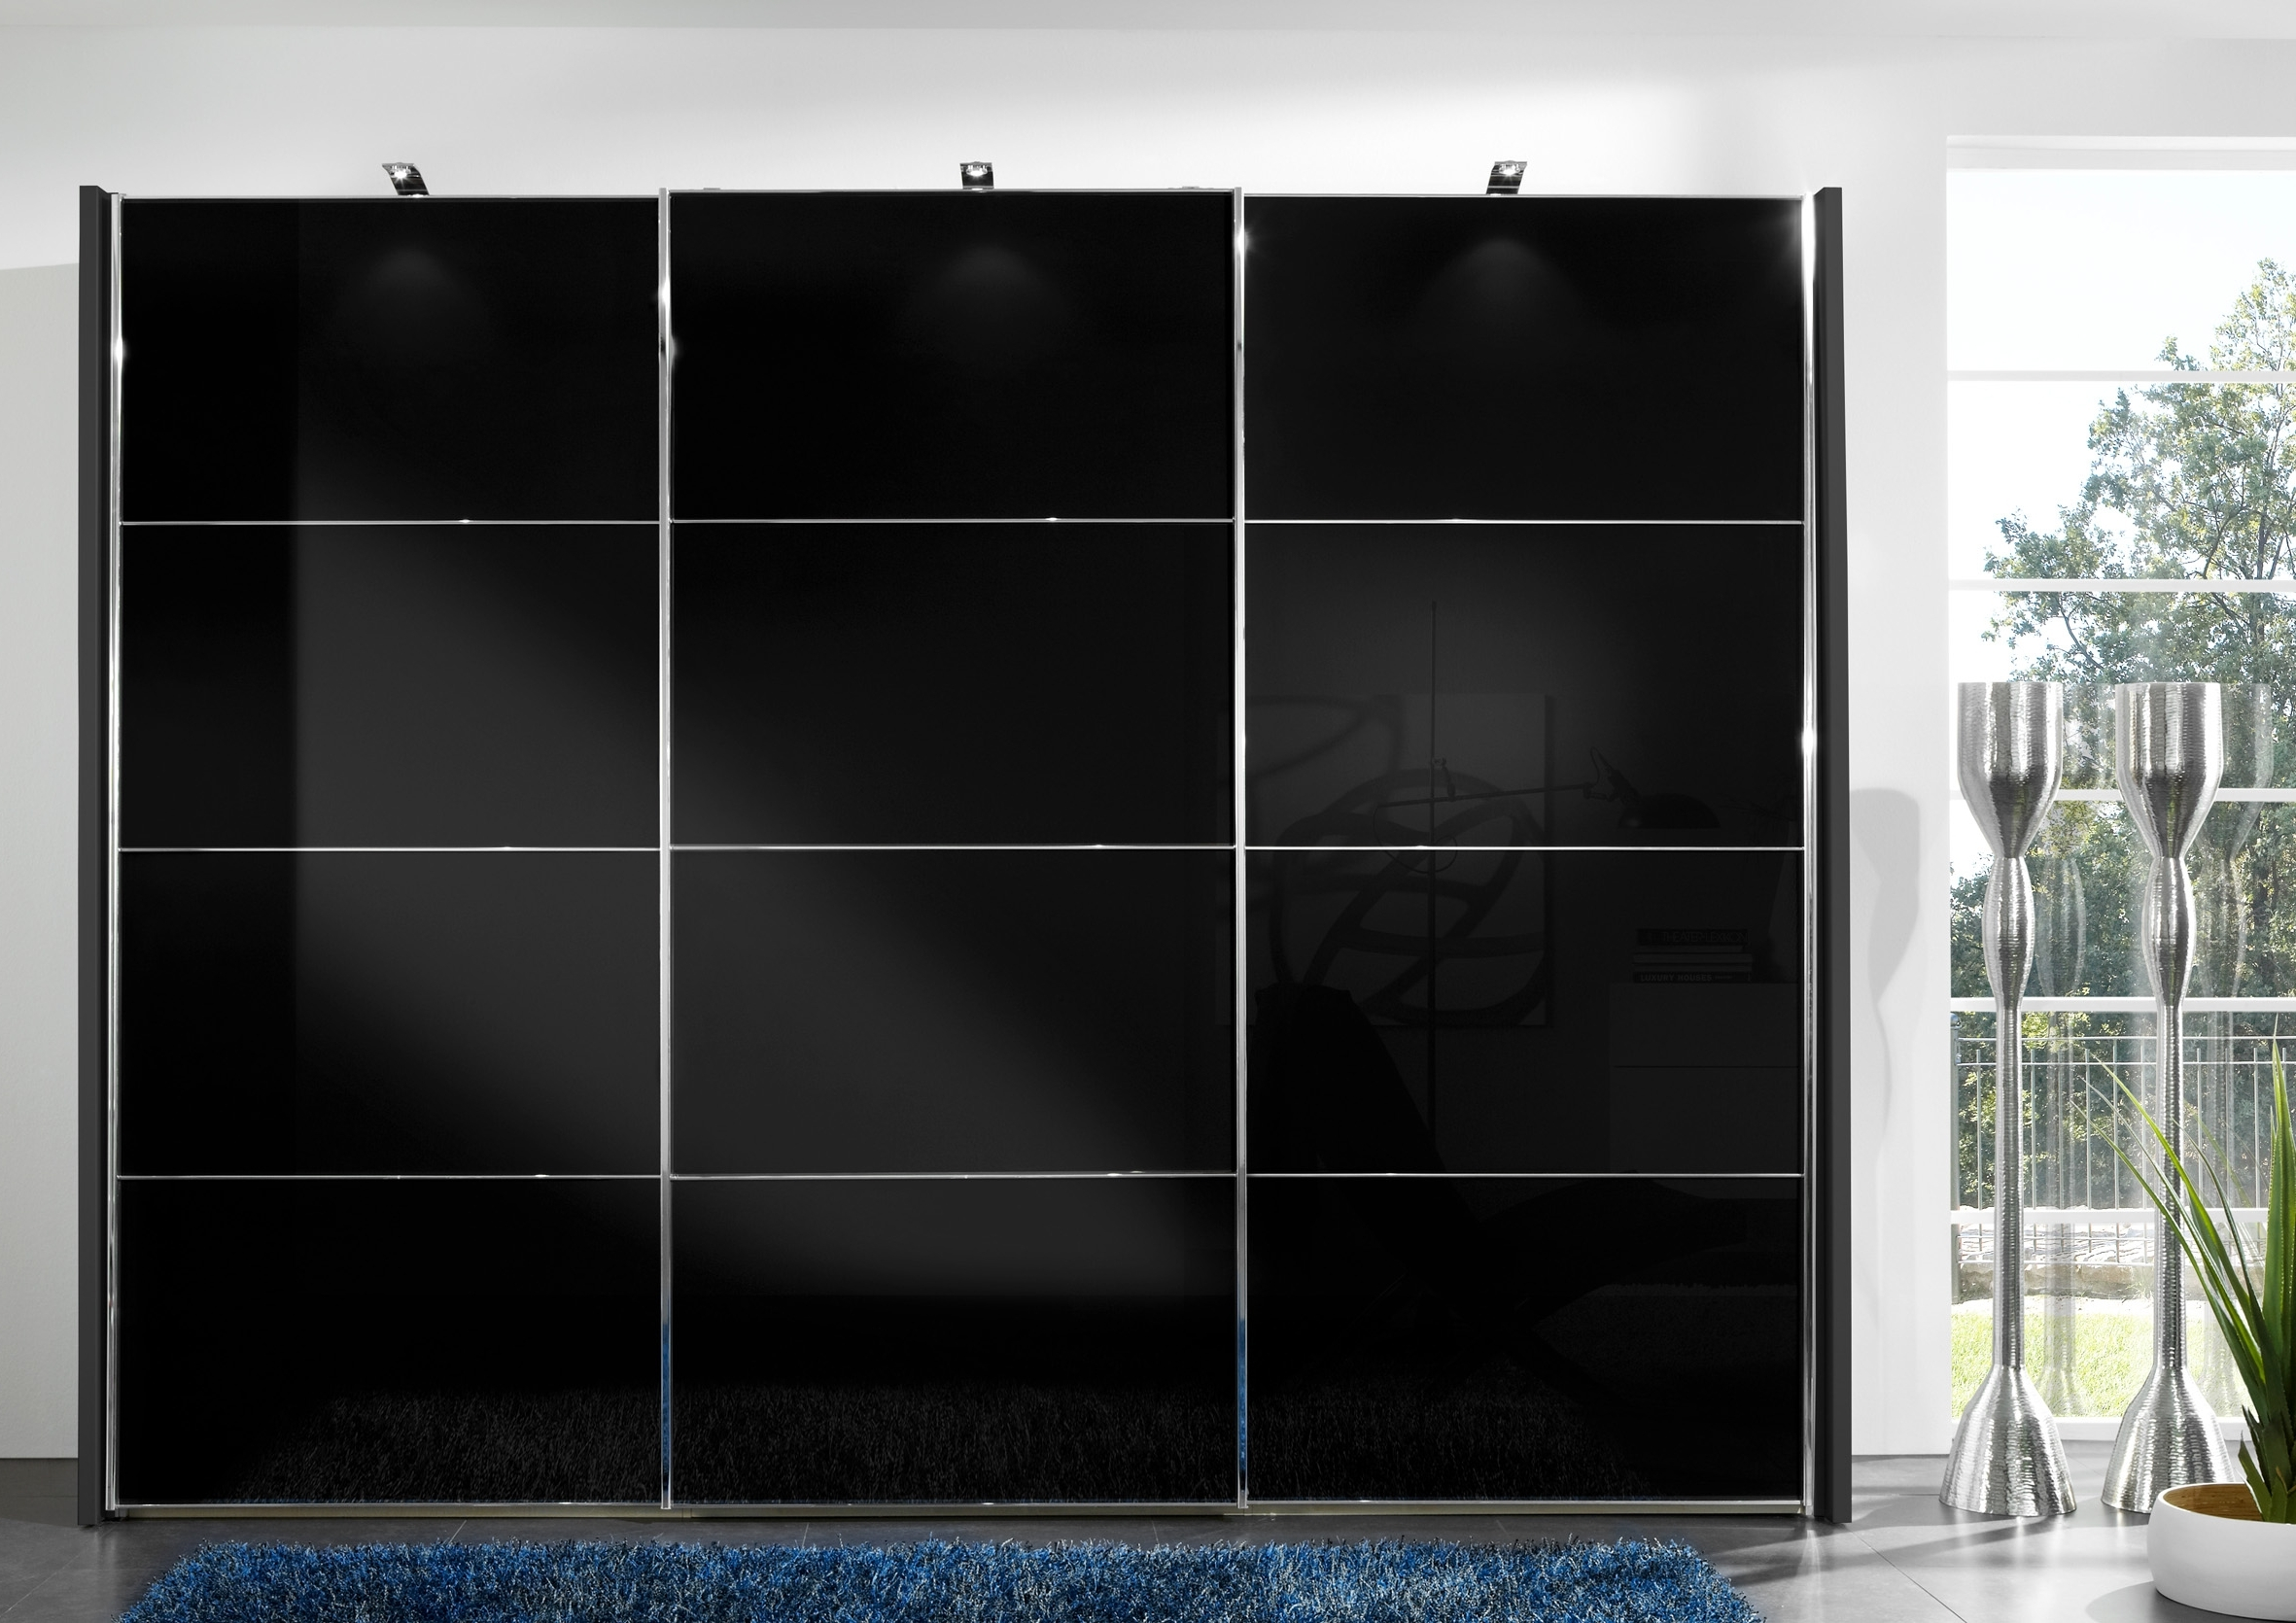 Black Sliding Wardrobes With Well Known Wiemann Miami 2 Sliding Wardrobe With Black Glass Sliding Wardrobe (View 2 of 15)